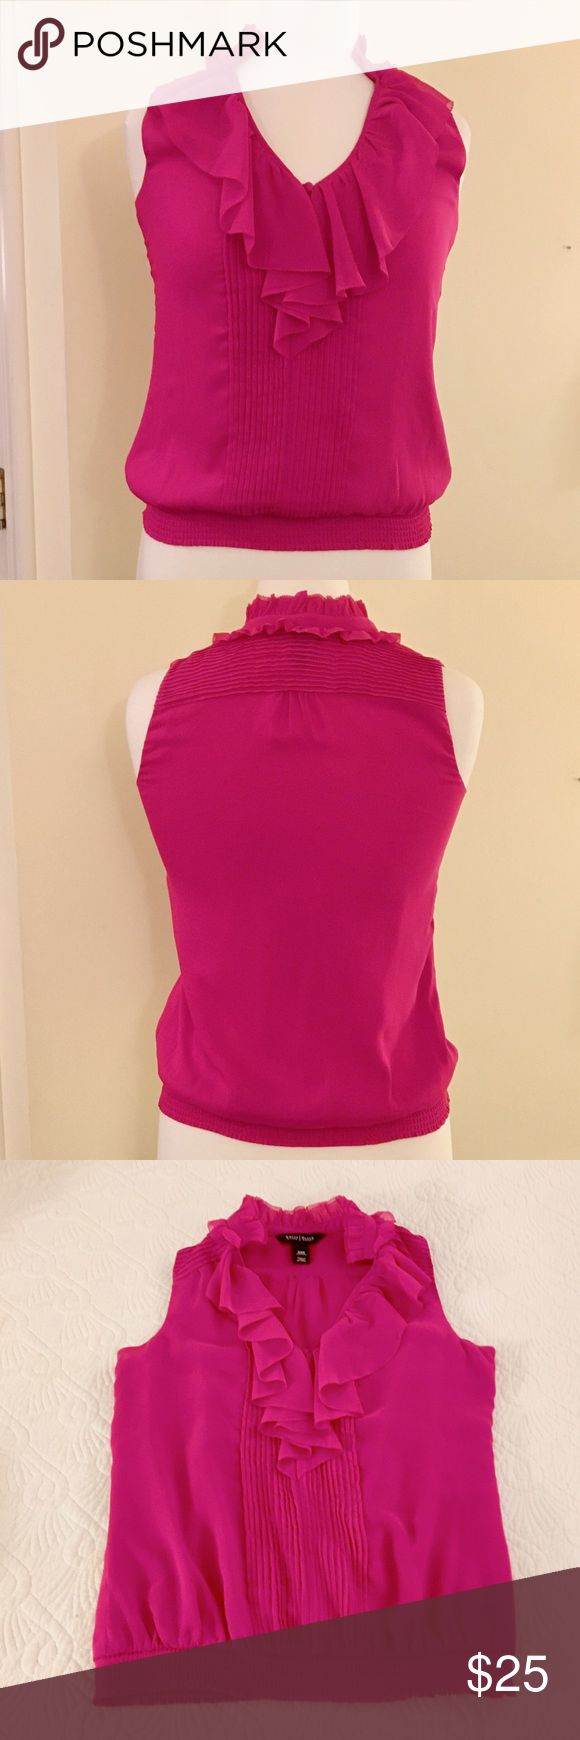 """White House Black Market Fuschia Sleeveless Blouse White House Black Market Fuschia Sleeveless Blouse.  Ruffle neckline and stretchy hemline.  100% Polyester.  So adorable under a blazer for a day at the office. When lying flat, bust is 16"""" across and length from top of shoulder to bottom of hem is 21"""".  Great condition.  Size XXS. White House Black Market Tops Blouses"""